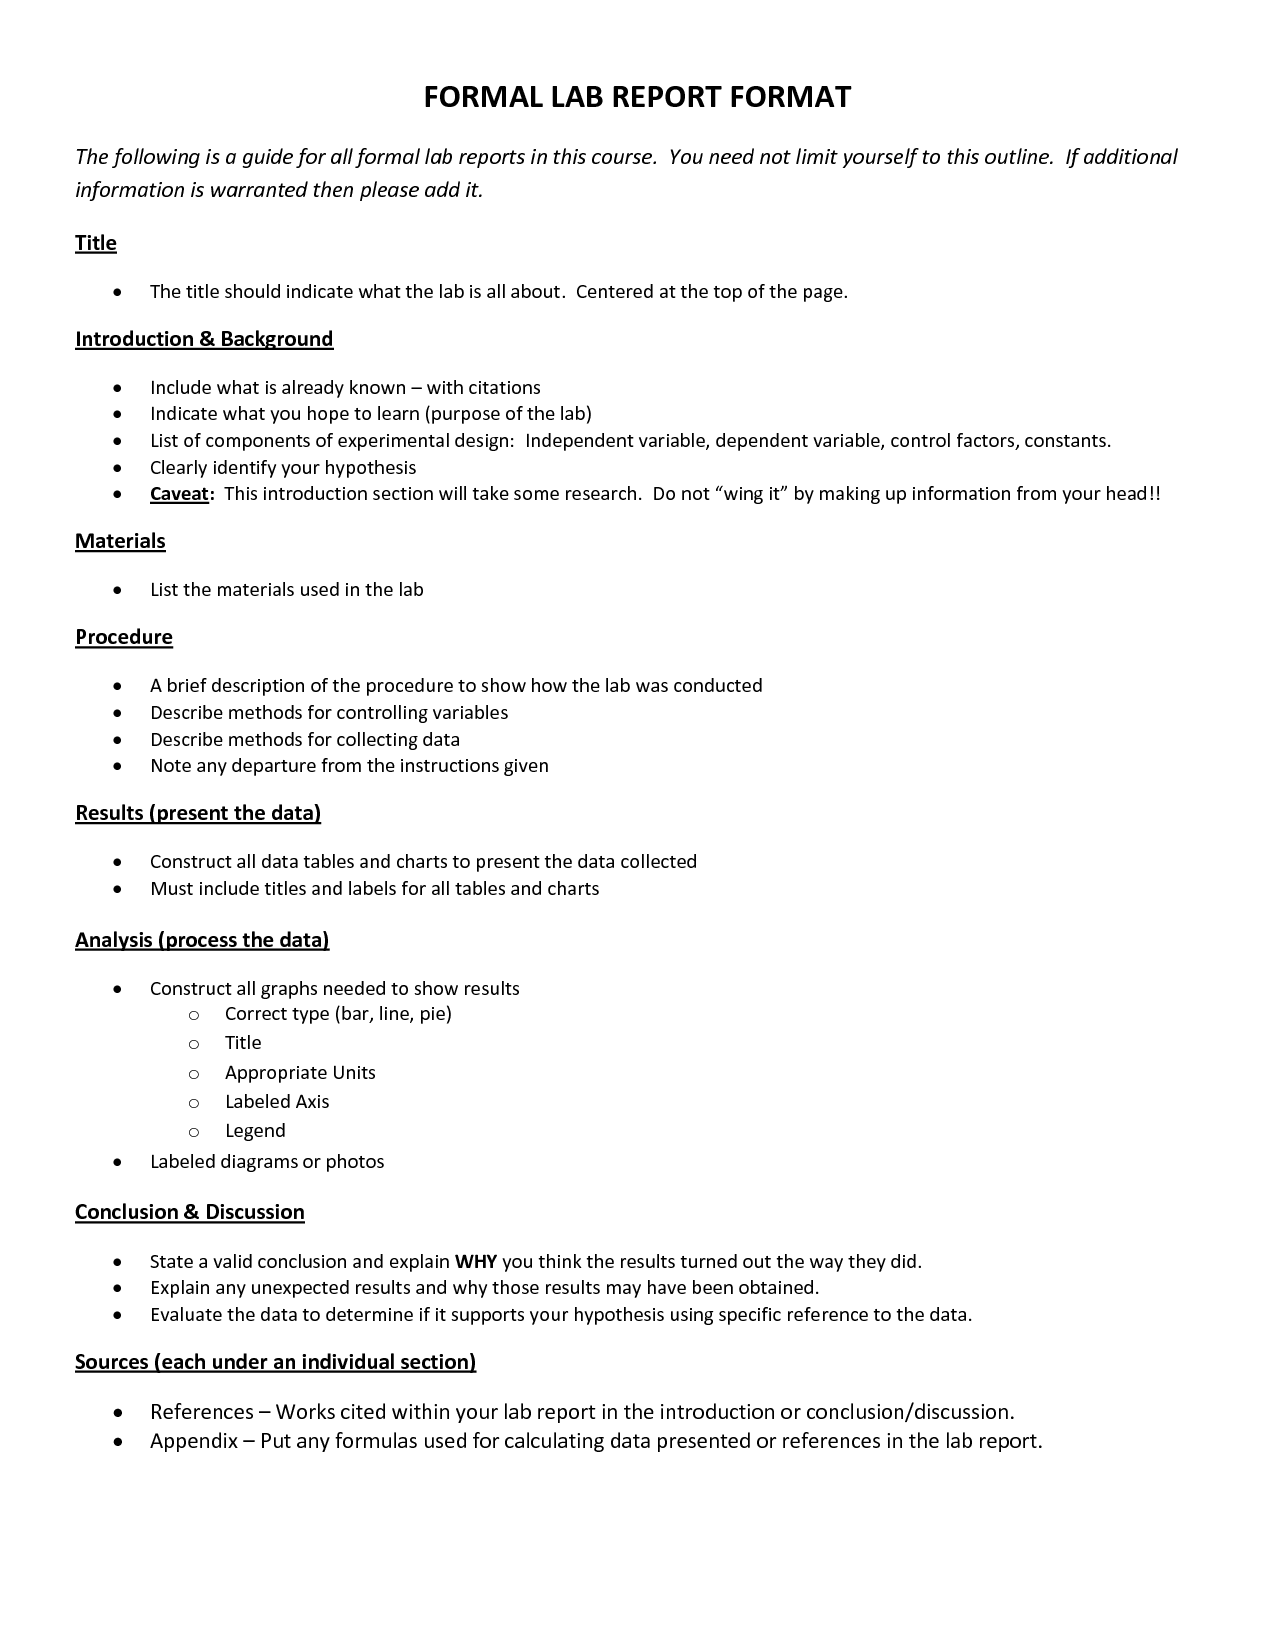 Formal-Lab-Report-Format Ama Format Example Lab Report on mechanical engineering, general chemistry, for writing biology, research task, graduate level, middle school, electrical testing, basic chemistry, organic chemistry,